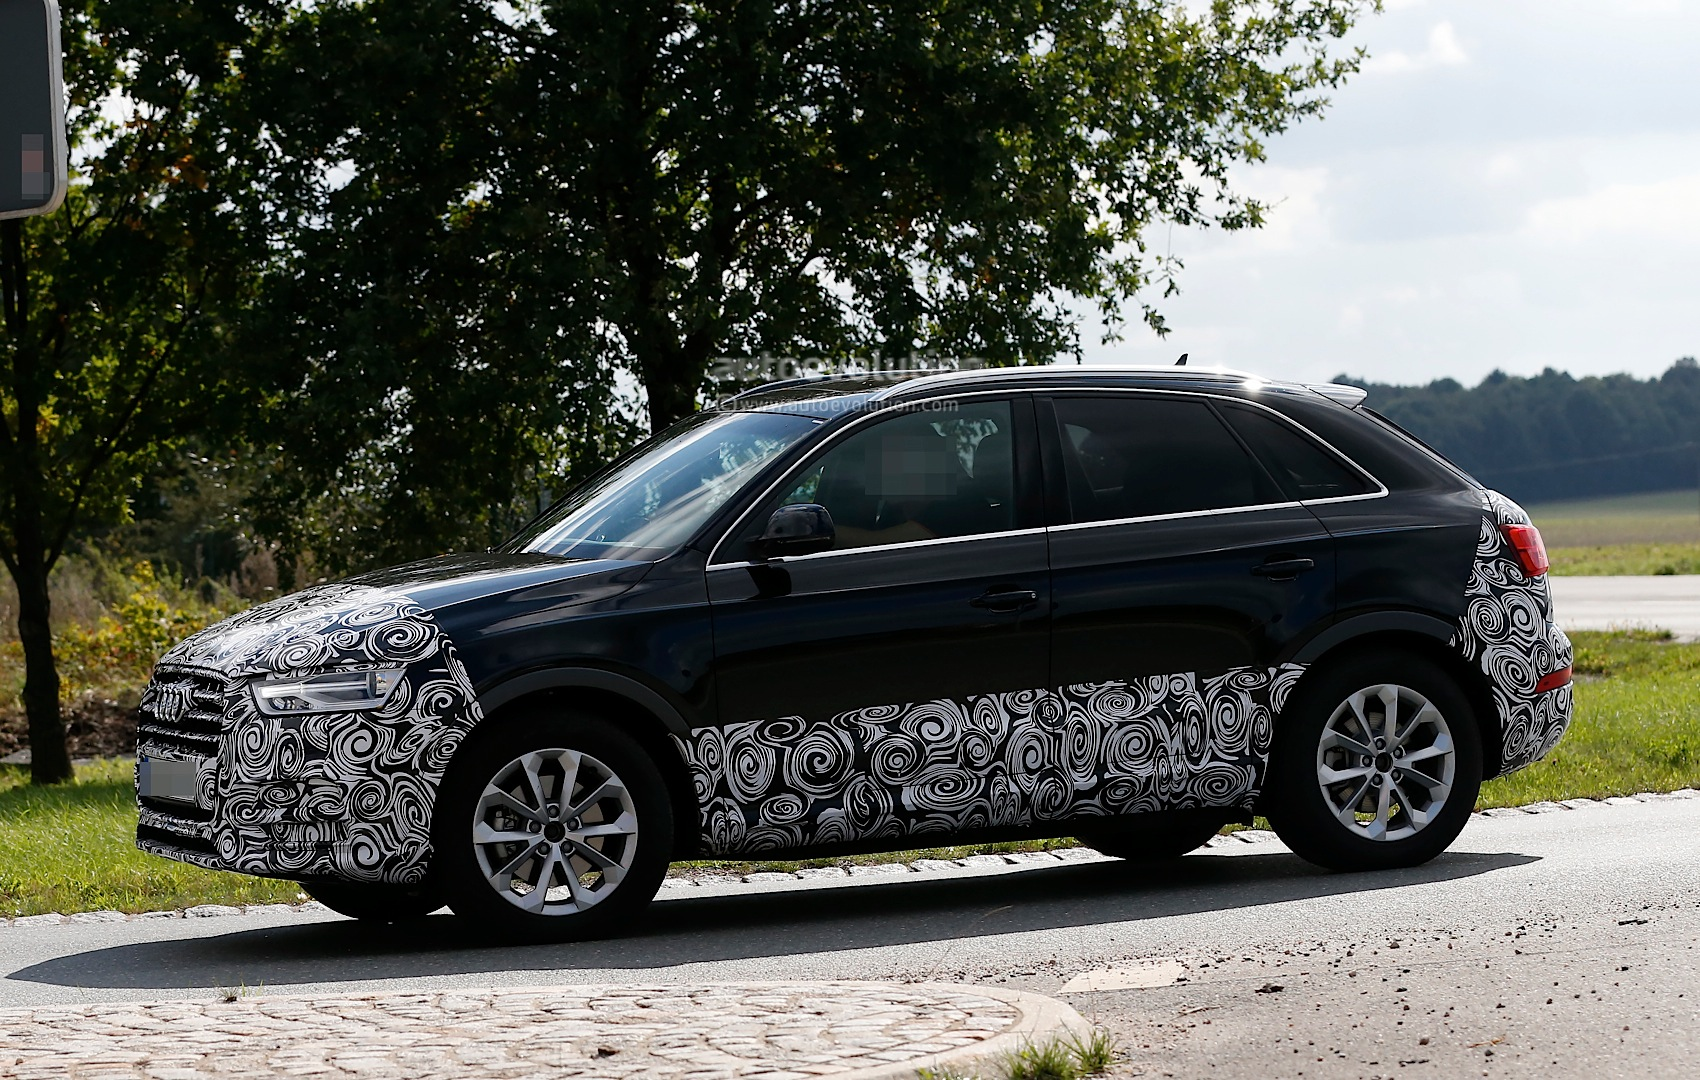 audi-q3-facelift-prototype-fully-reveals-headlights-and-taillights_4.jpg